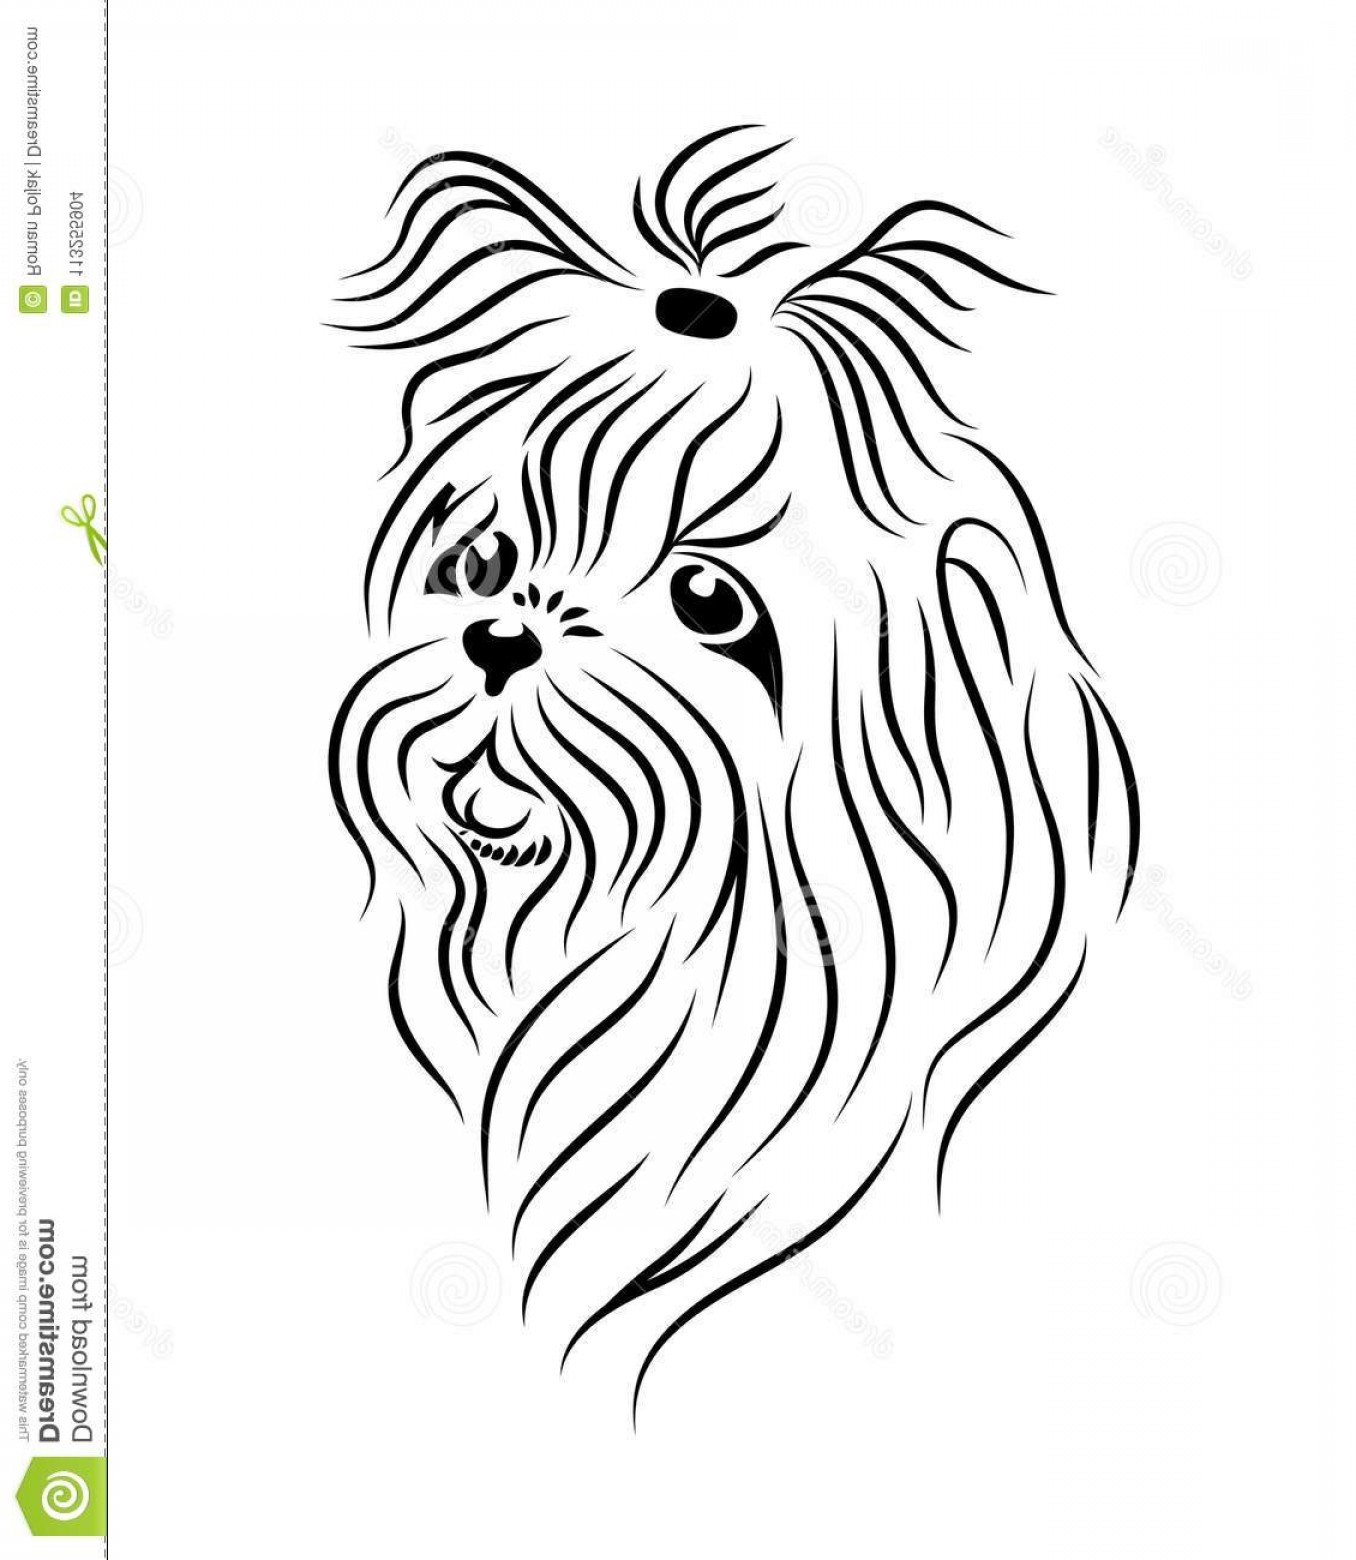 Shih Tzu Vector Siluete: Shih Tzu Dog Line Art Tribal Freehand Vector Illustration Print Pod Sites Coloring Books Shih Tzu Dog Line Art Tribal Image